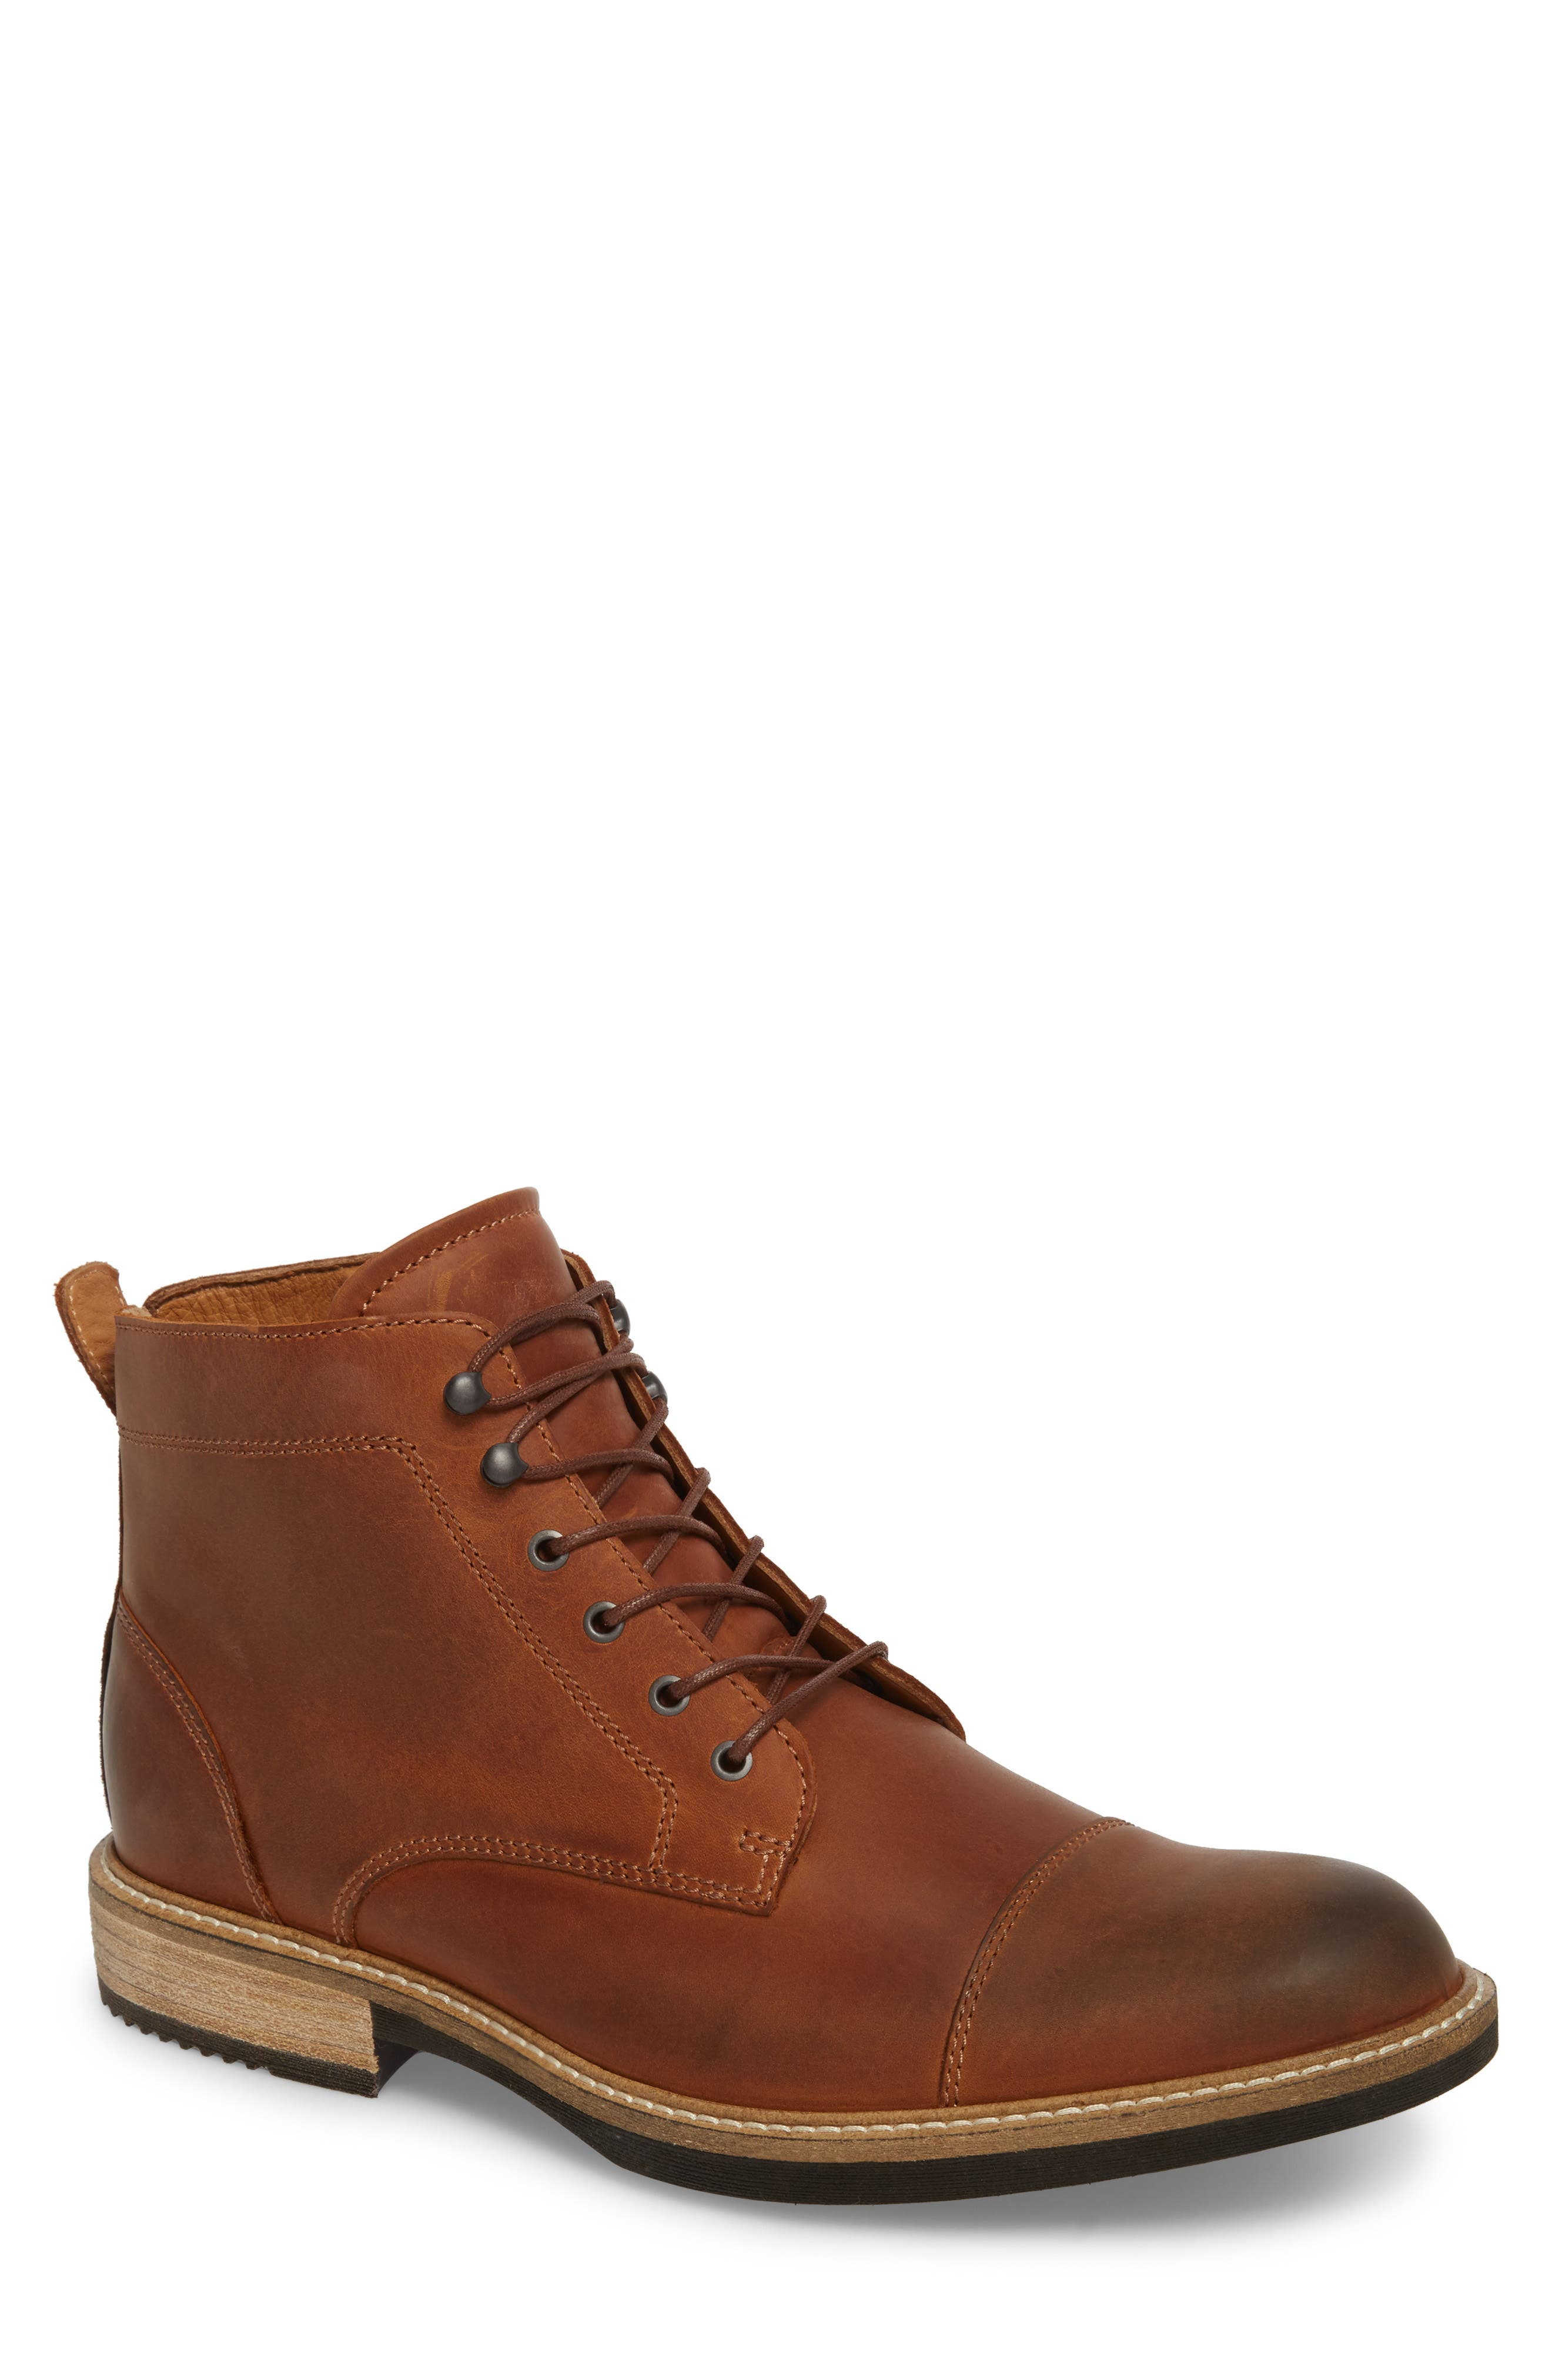 Kenton Vintage Cap Toe Boot,                         Main,                         color, Cognac Leather